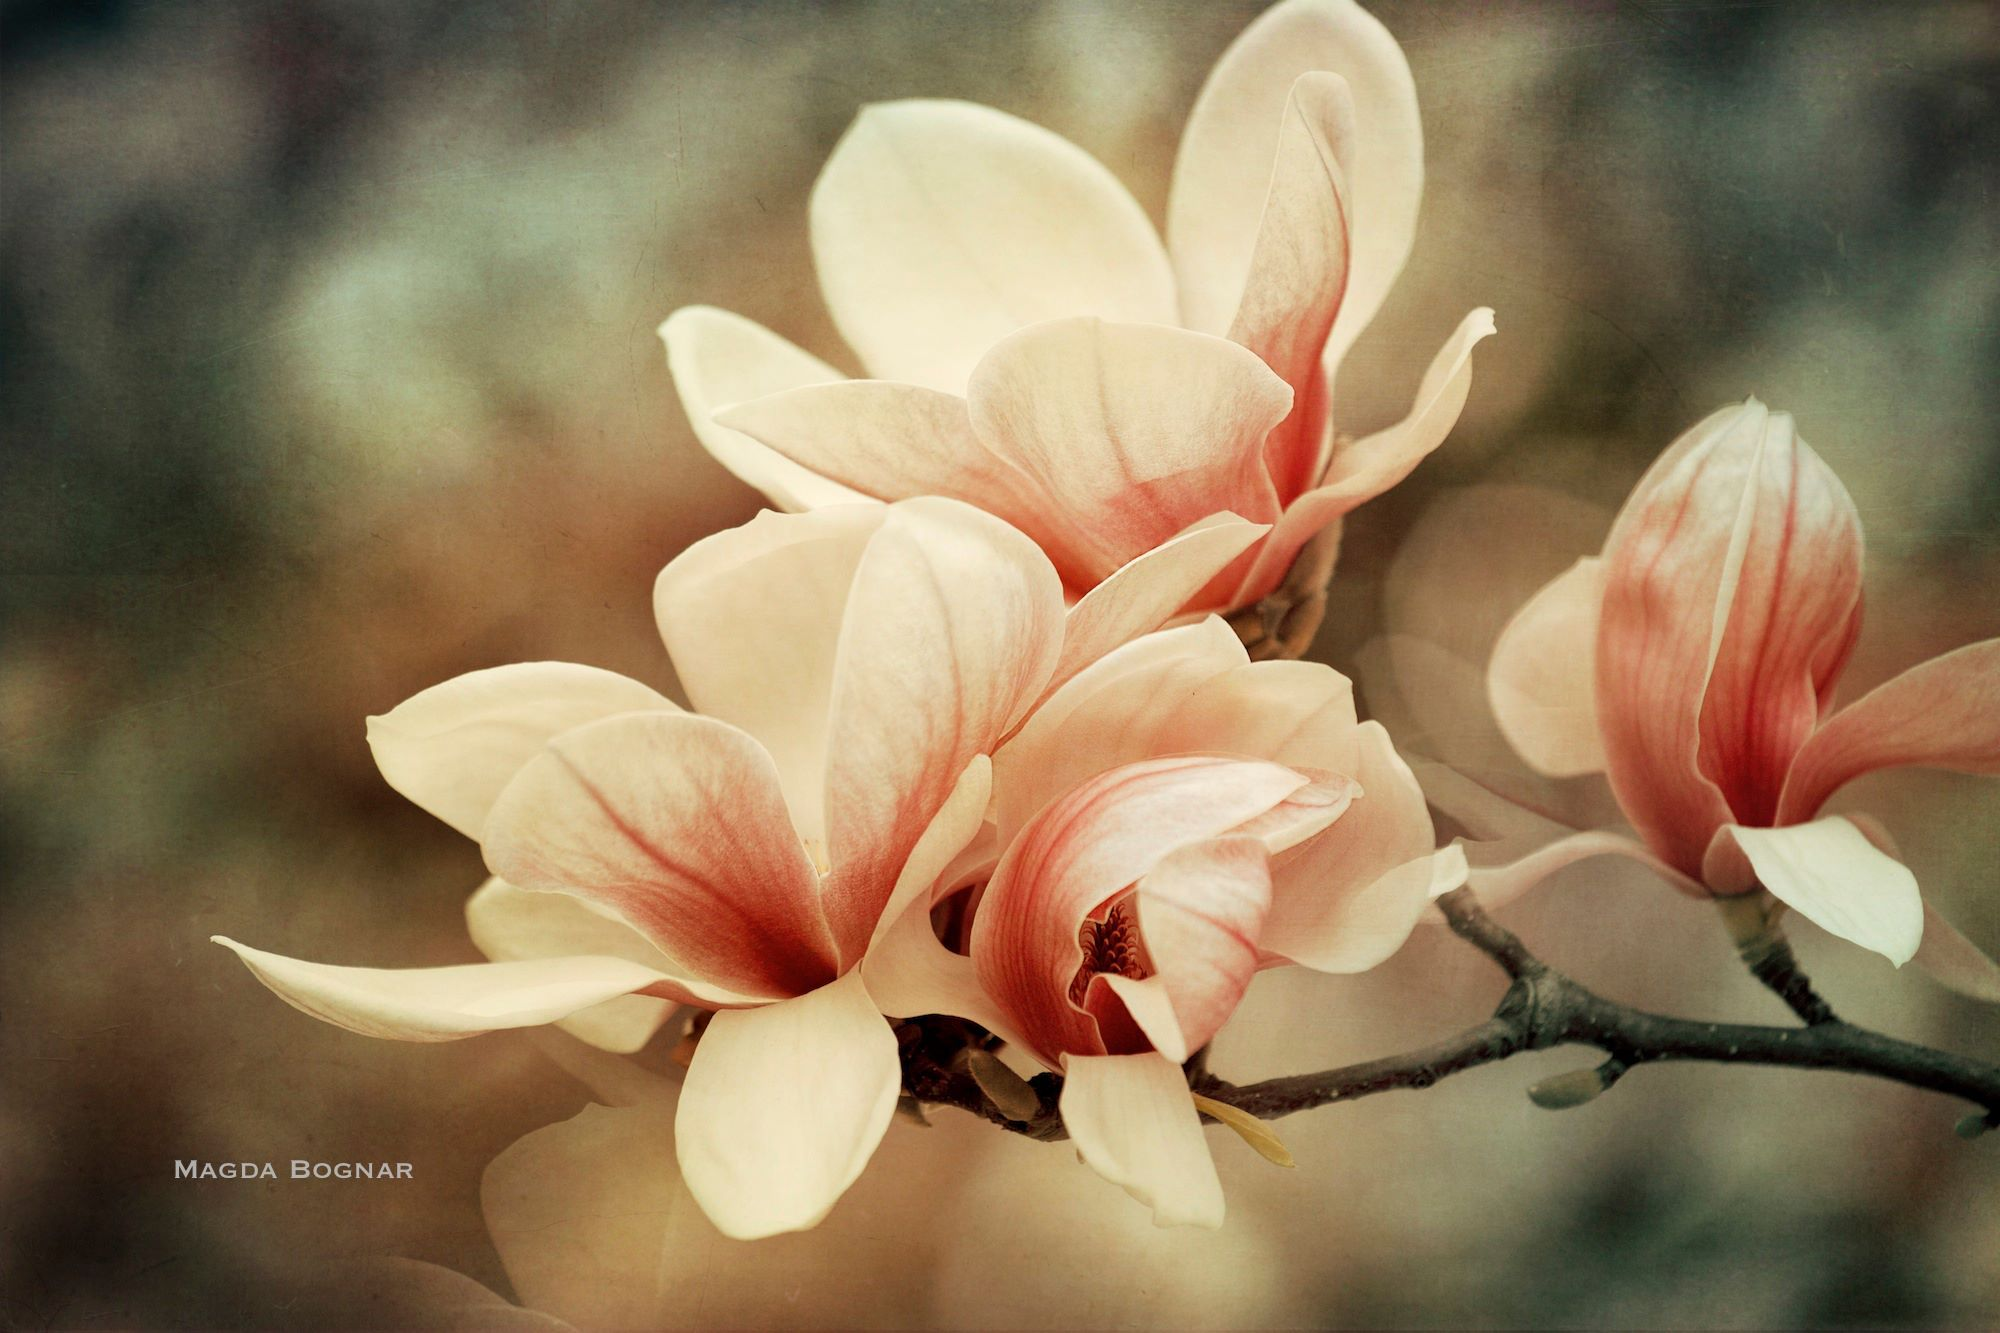 Congratulations to the author © Magda Bognar We would like to remind authors that it is possible to leave your comments directly on the Pinterest site.